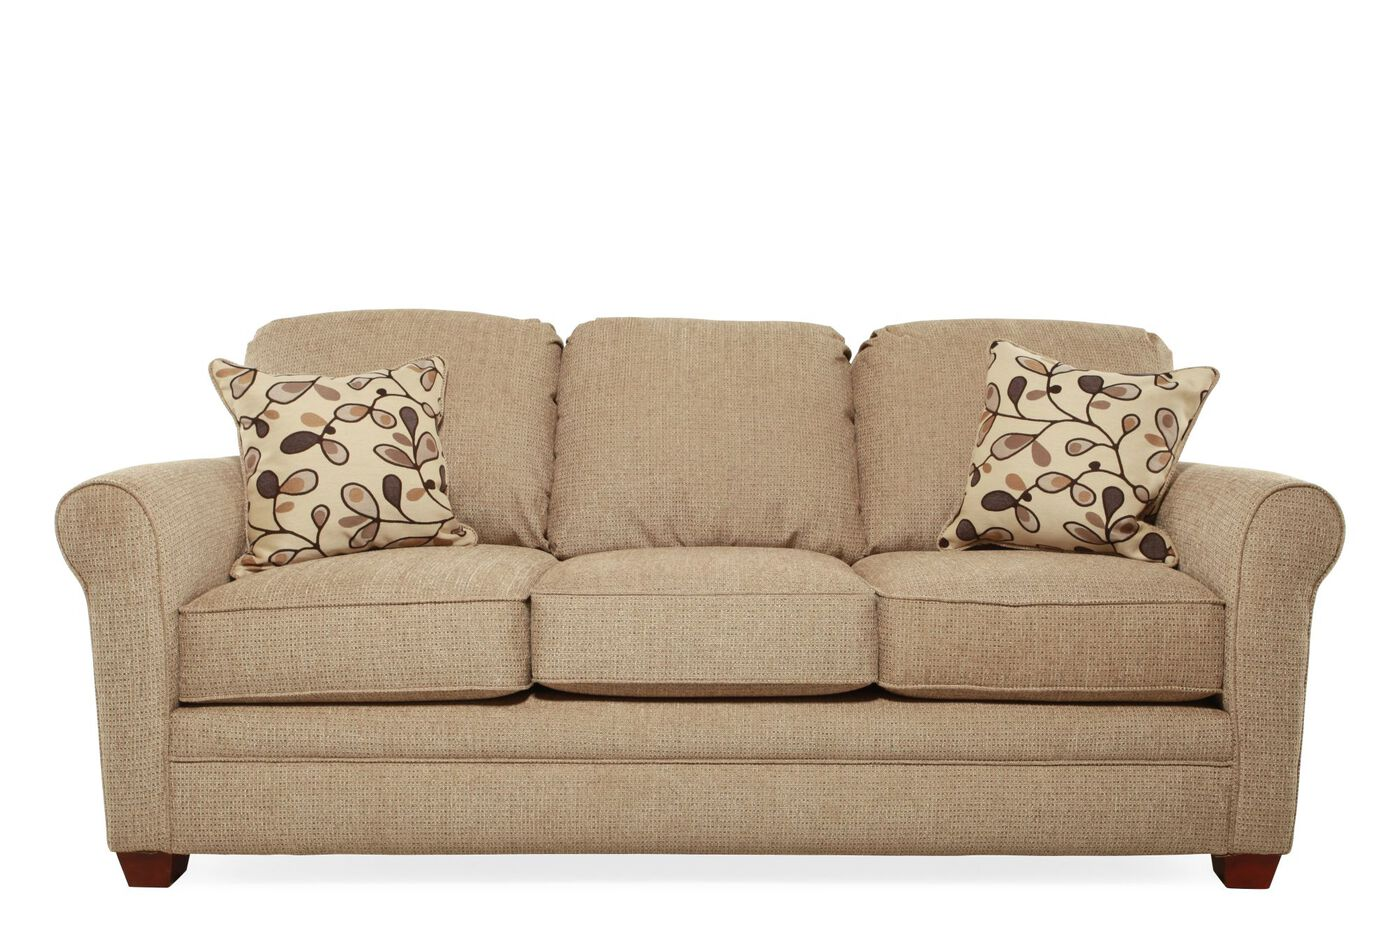 I rest traditional 84 sleeper sofa in brown mathis for 84 inch sofa